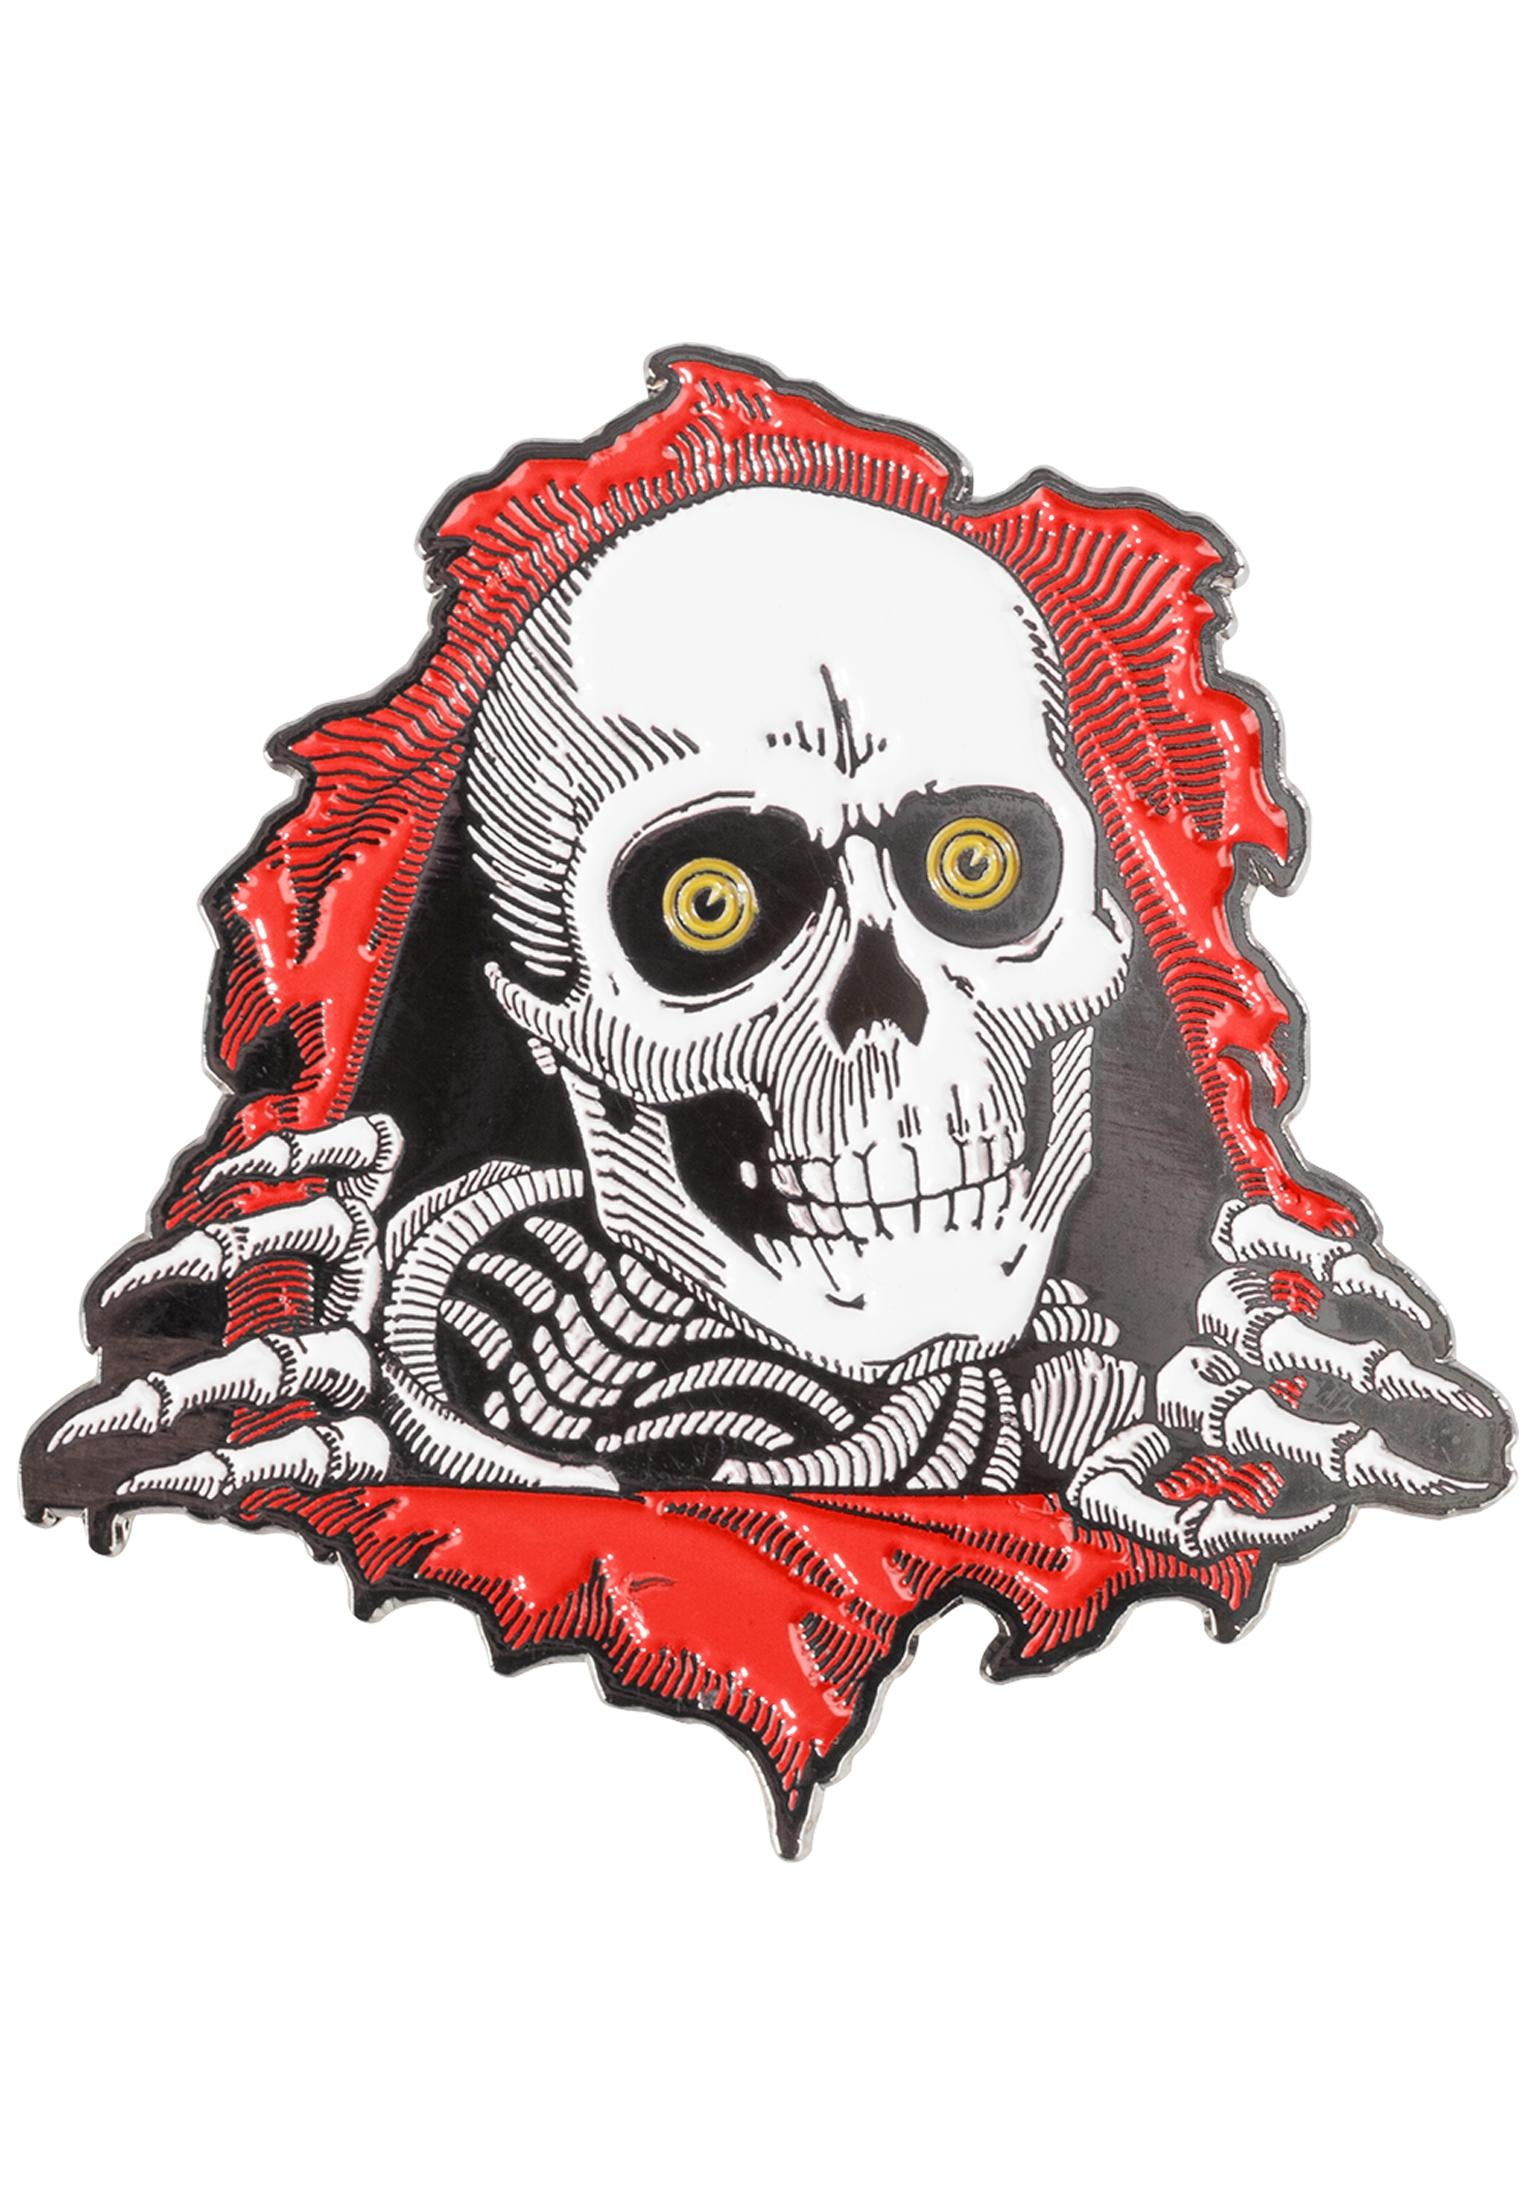 POWELL-PERALTA 'Ripper' Pin